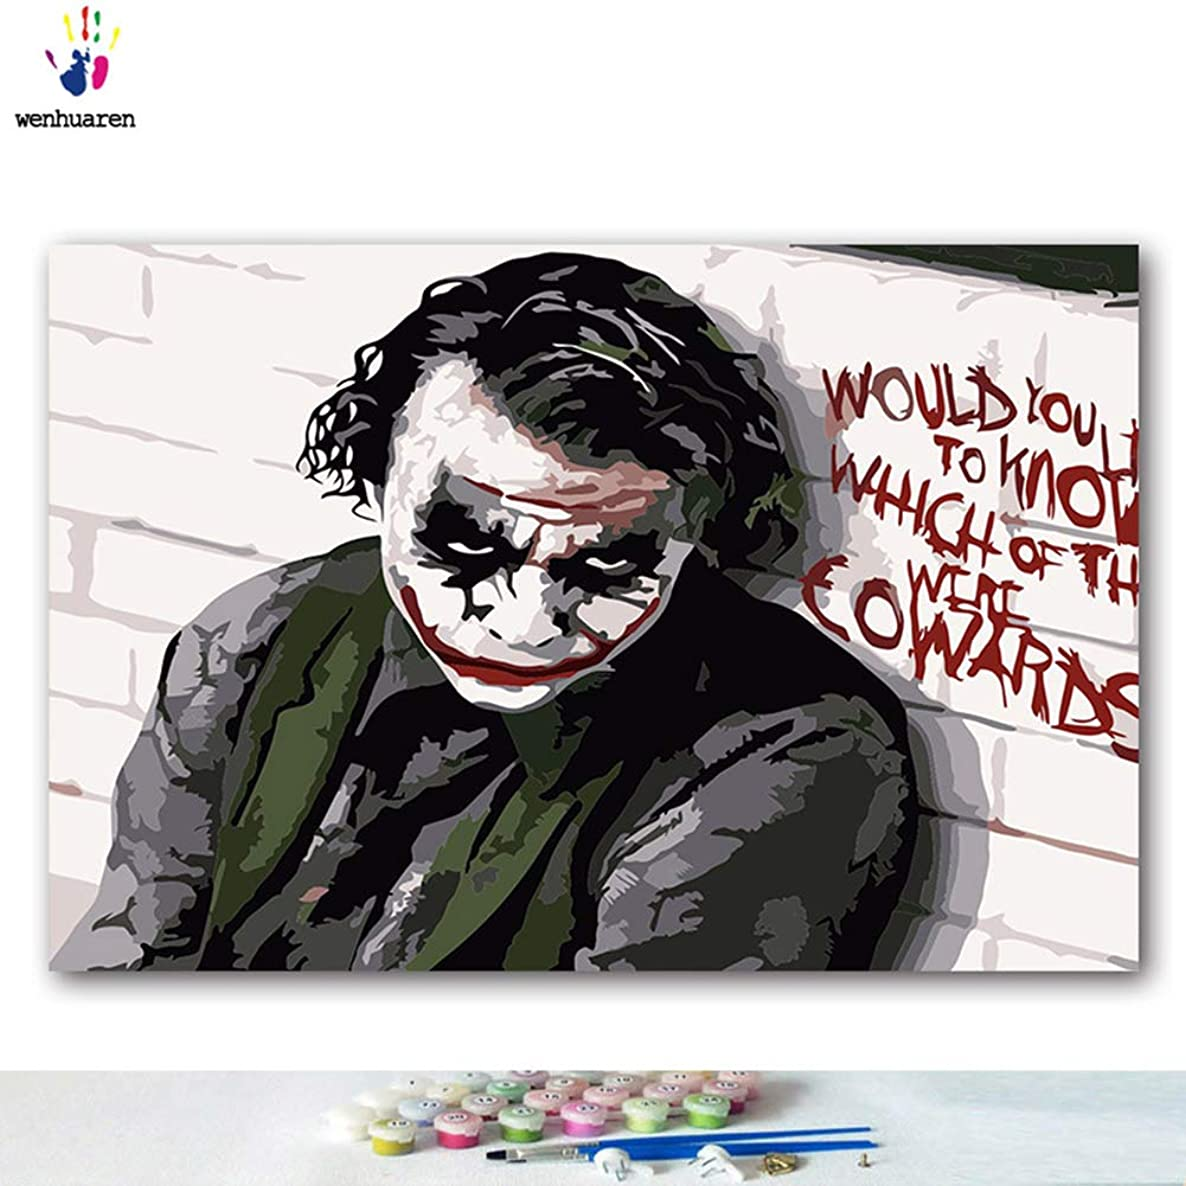 Paint by Number Kits 12 x 18 inch Canvas DIY Oil Painting for Kids, Students, Adults Beginner with Brushes and Acrylic Pigment -Suicide Squad Clown(Without Frame)